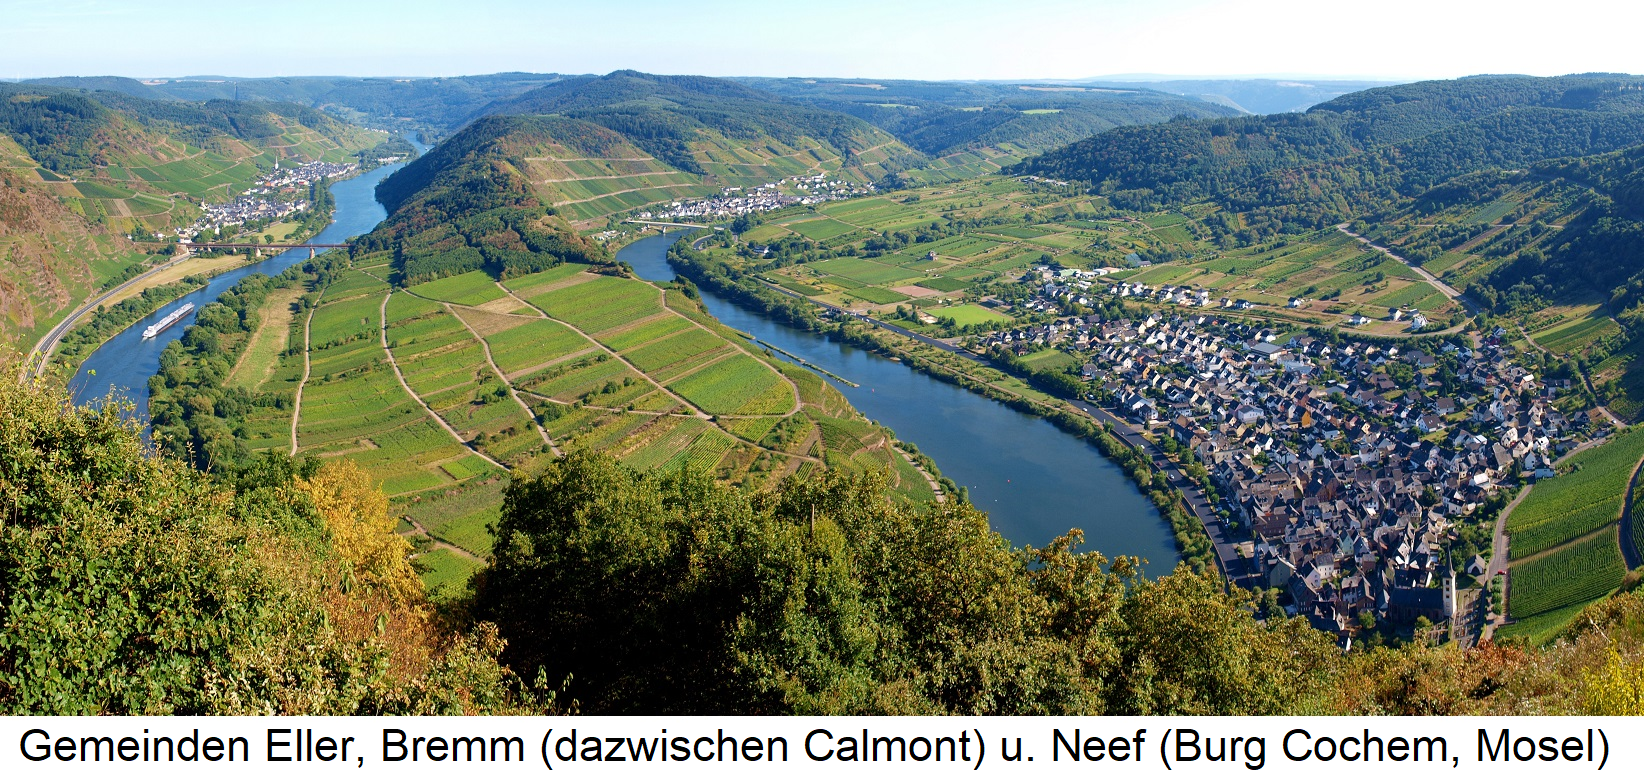 Frauenberg - Moselle Loop Eller, Bremm and Neef